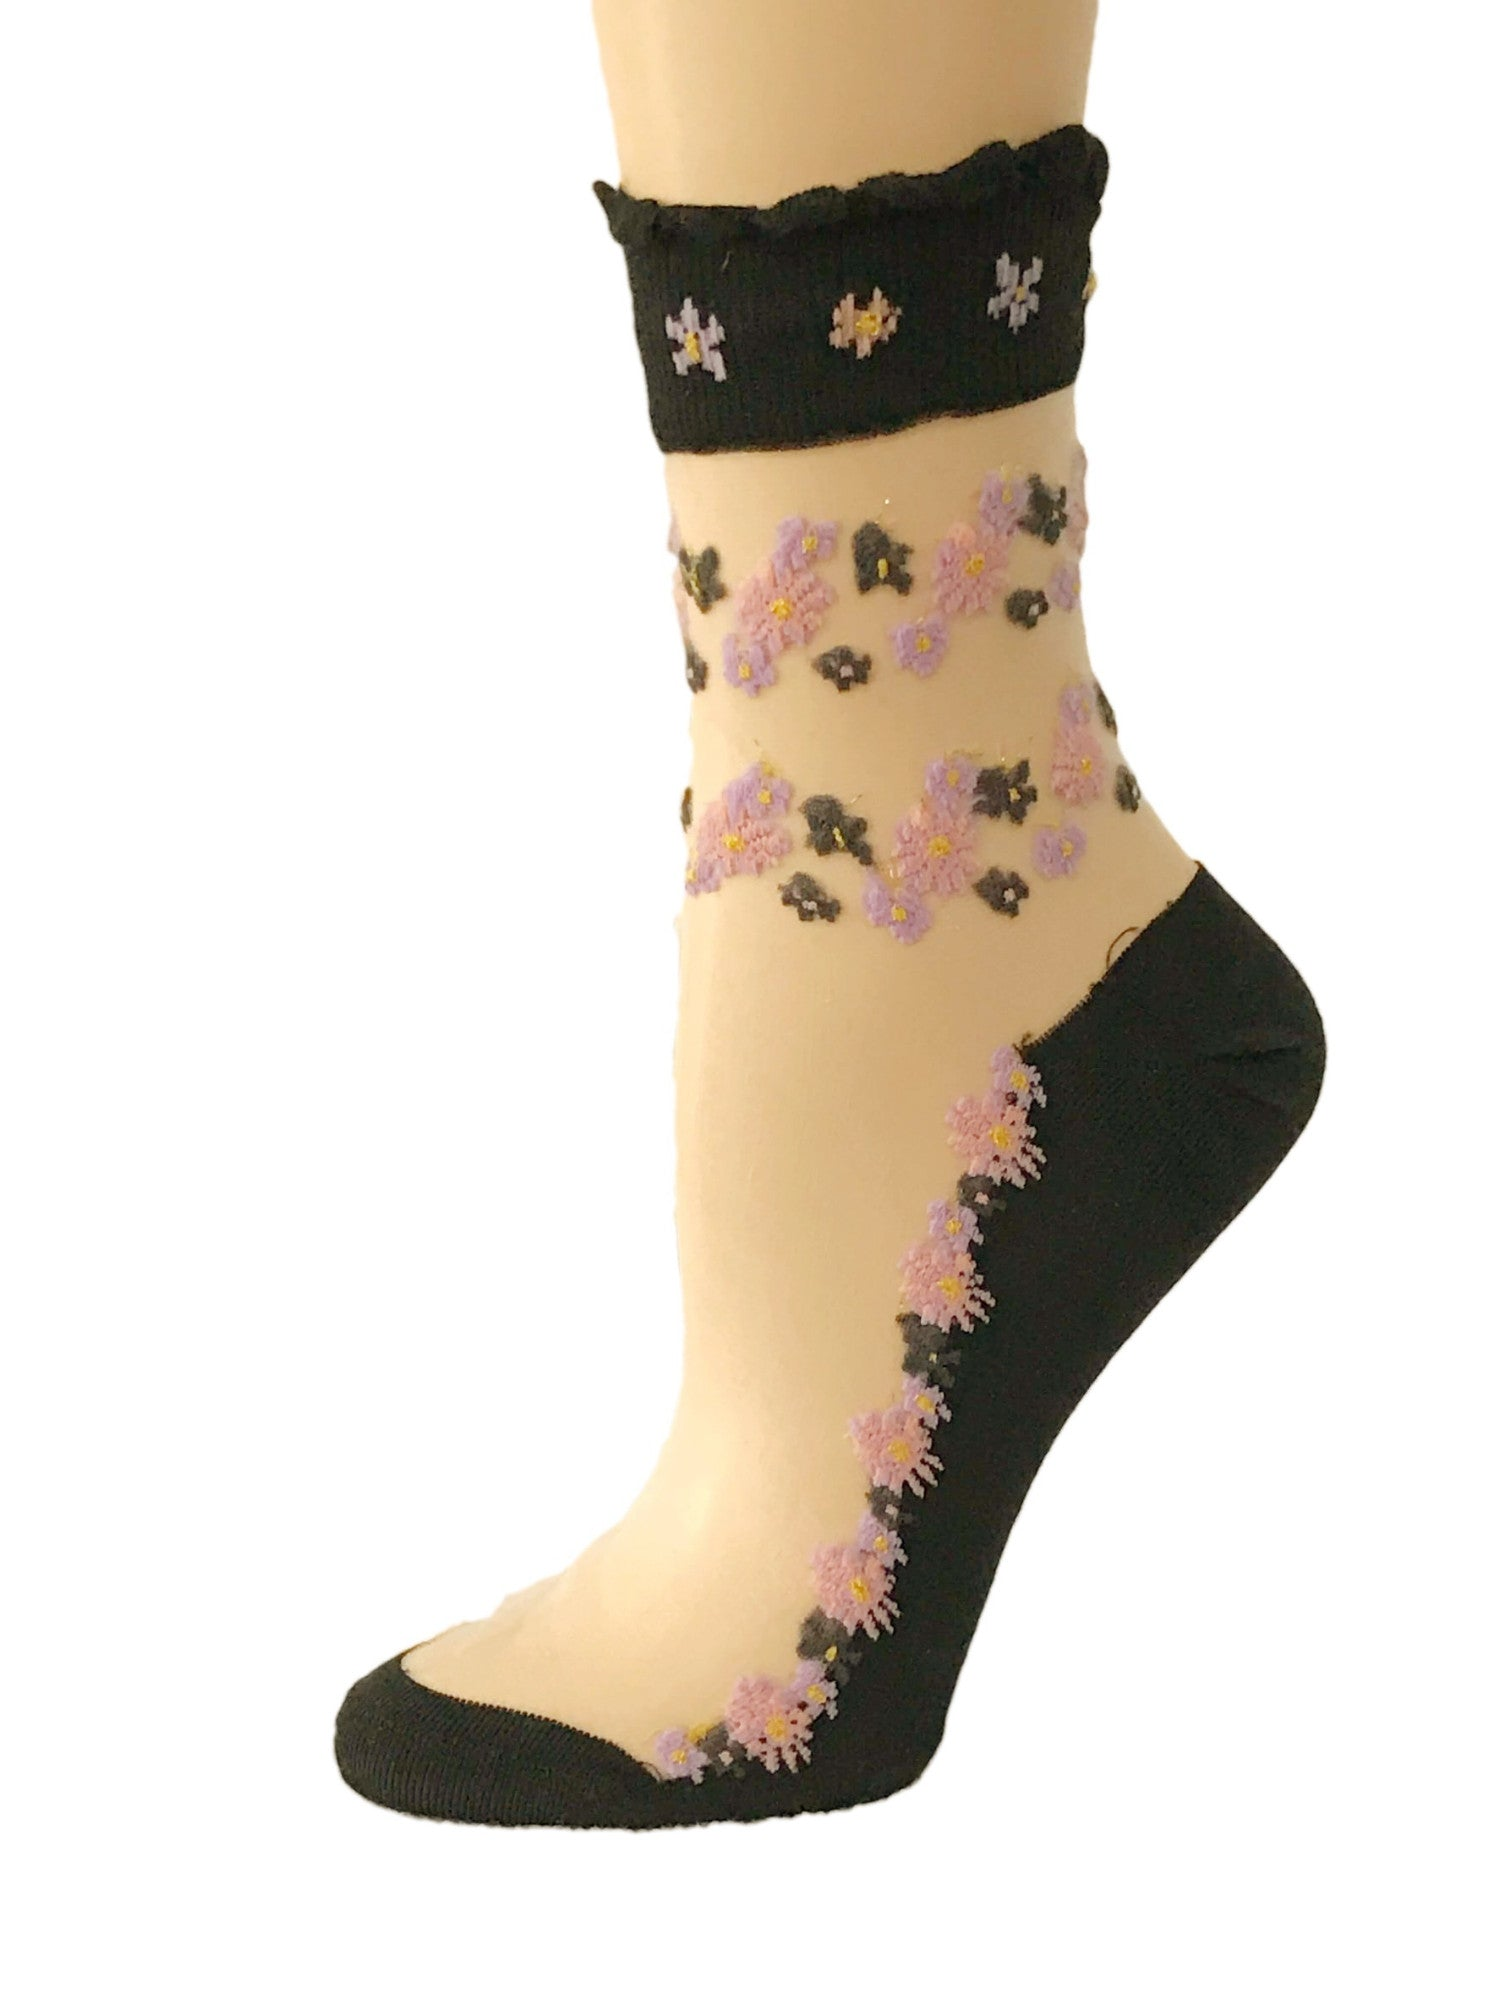 Charming Mini Pink/Brown Floral Sheer Socks - Global Trendz Fashion®